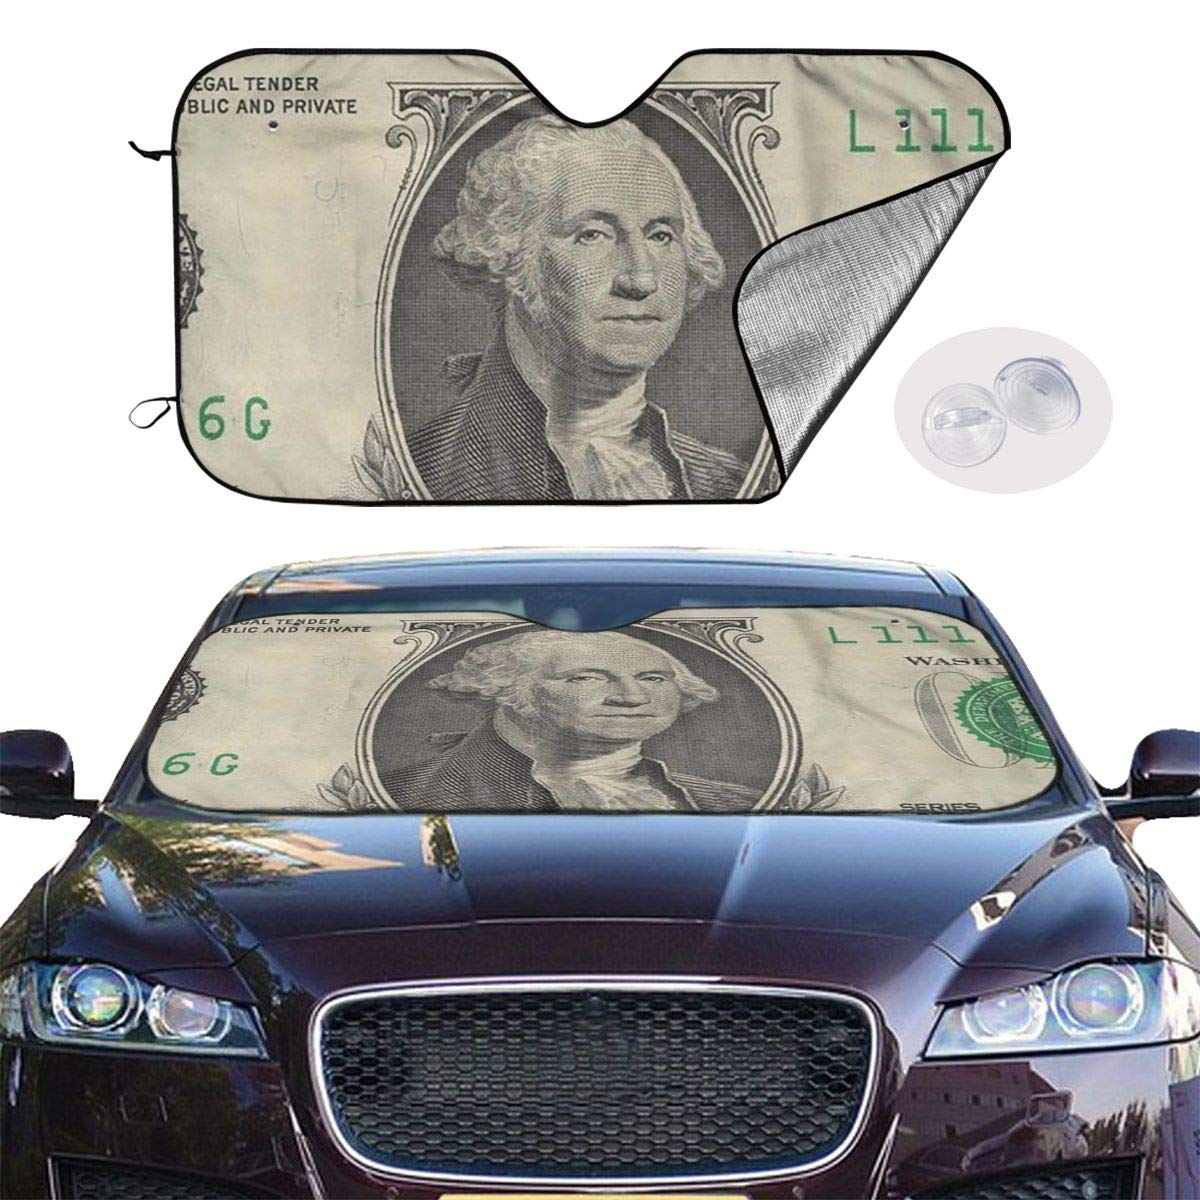 Windshield Sunshade for Car Foldable UV Ray Reflector Auto Front Window Sun Shade Visor Shield Cover, Keeps Vehicle Cool, One Dollar Bill by Sha-de